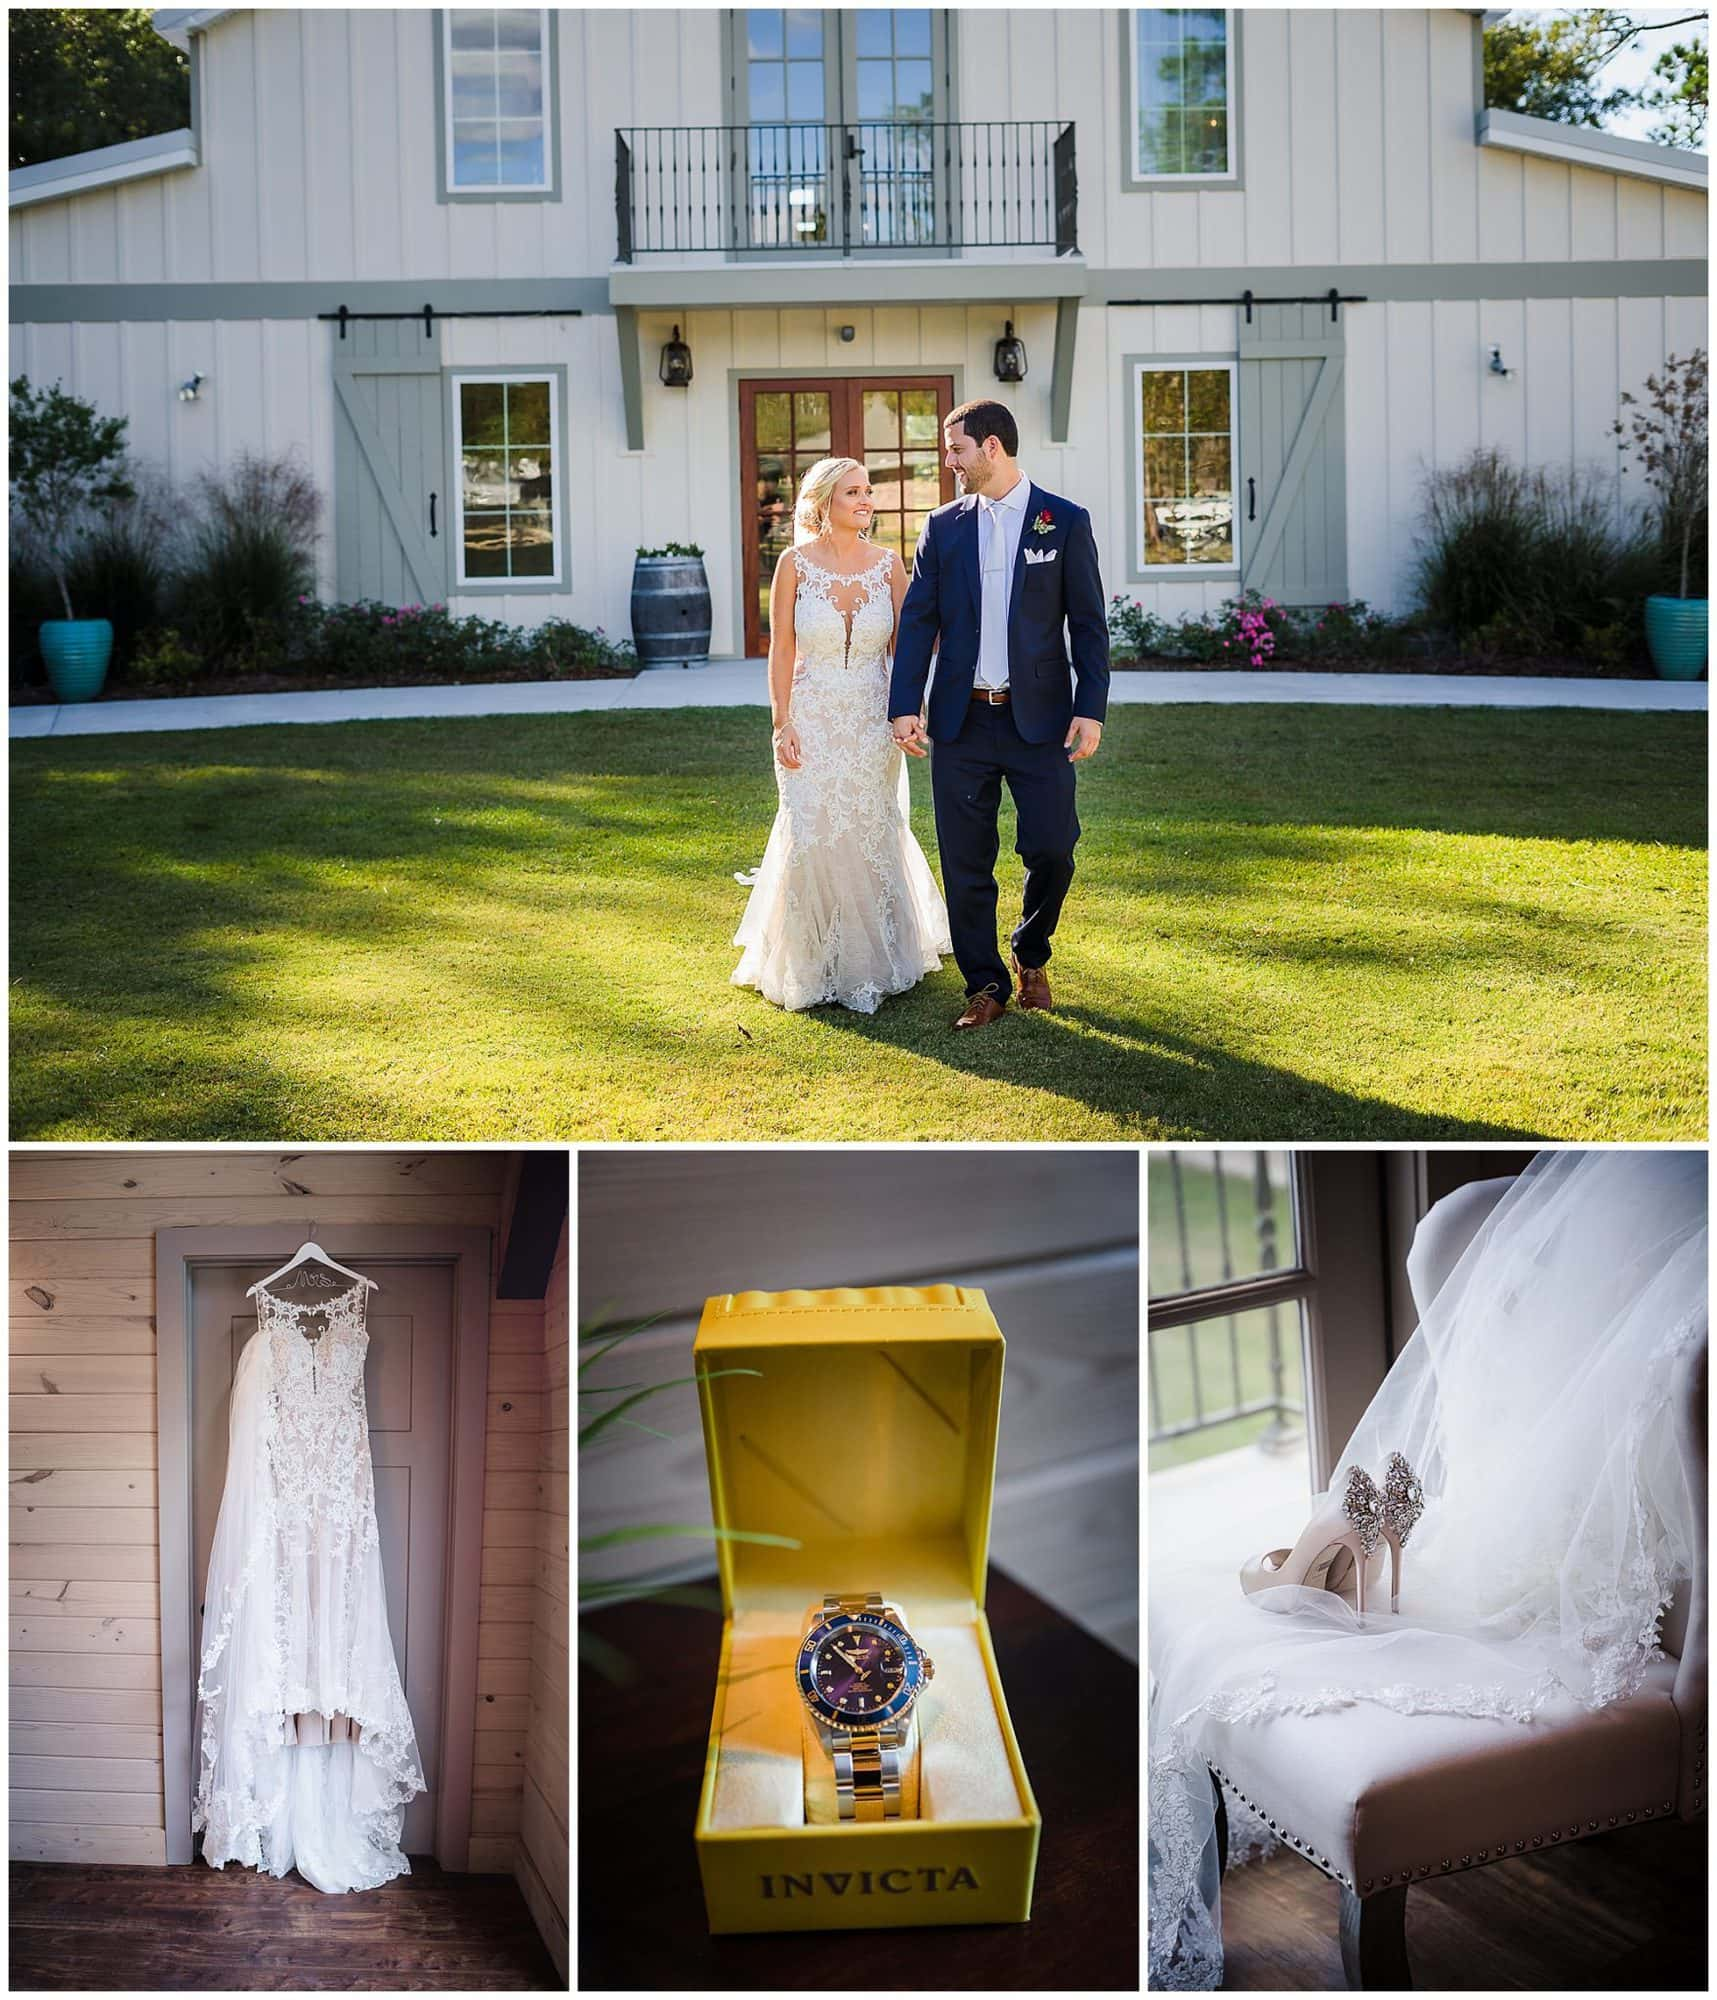 The Sadie Jane Wedding Venue wedding couple and details